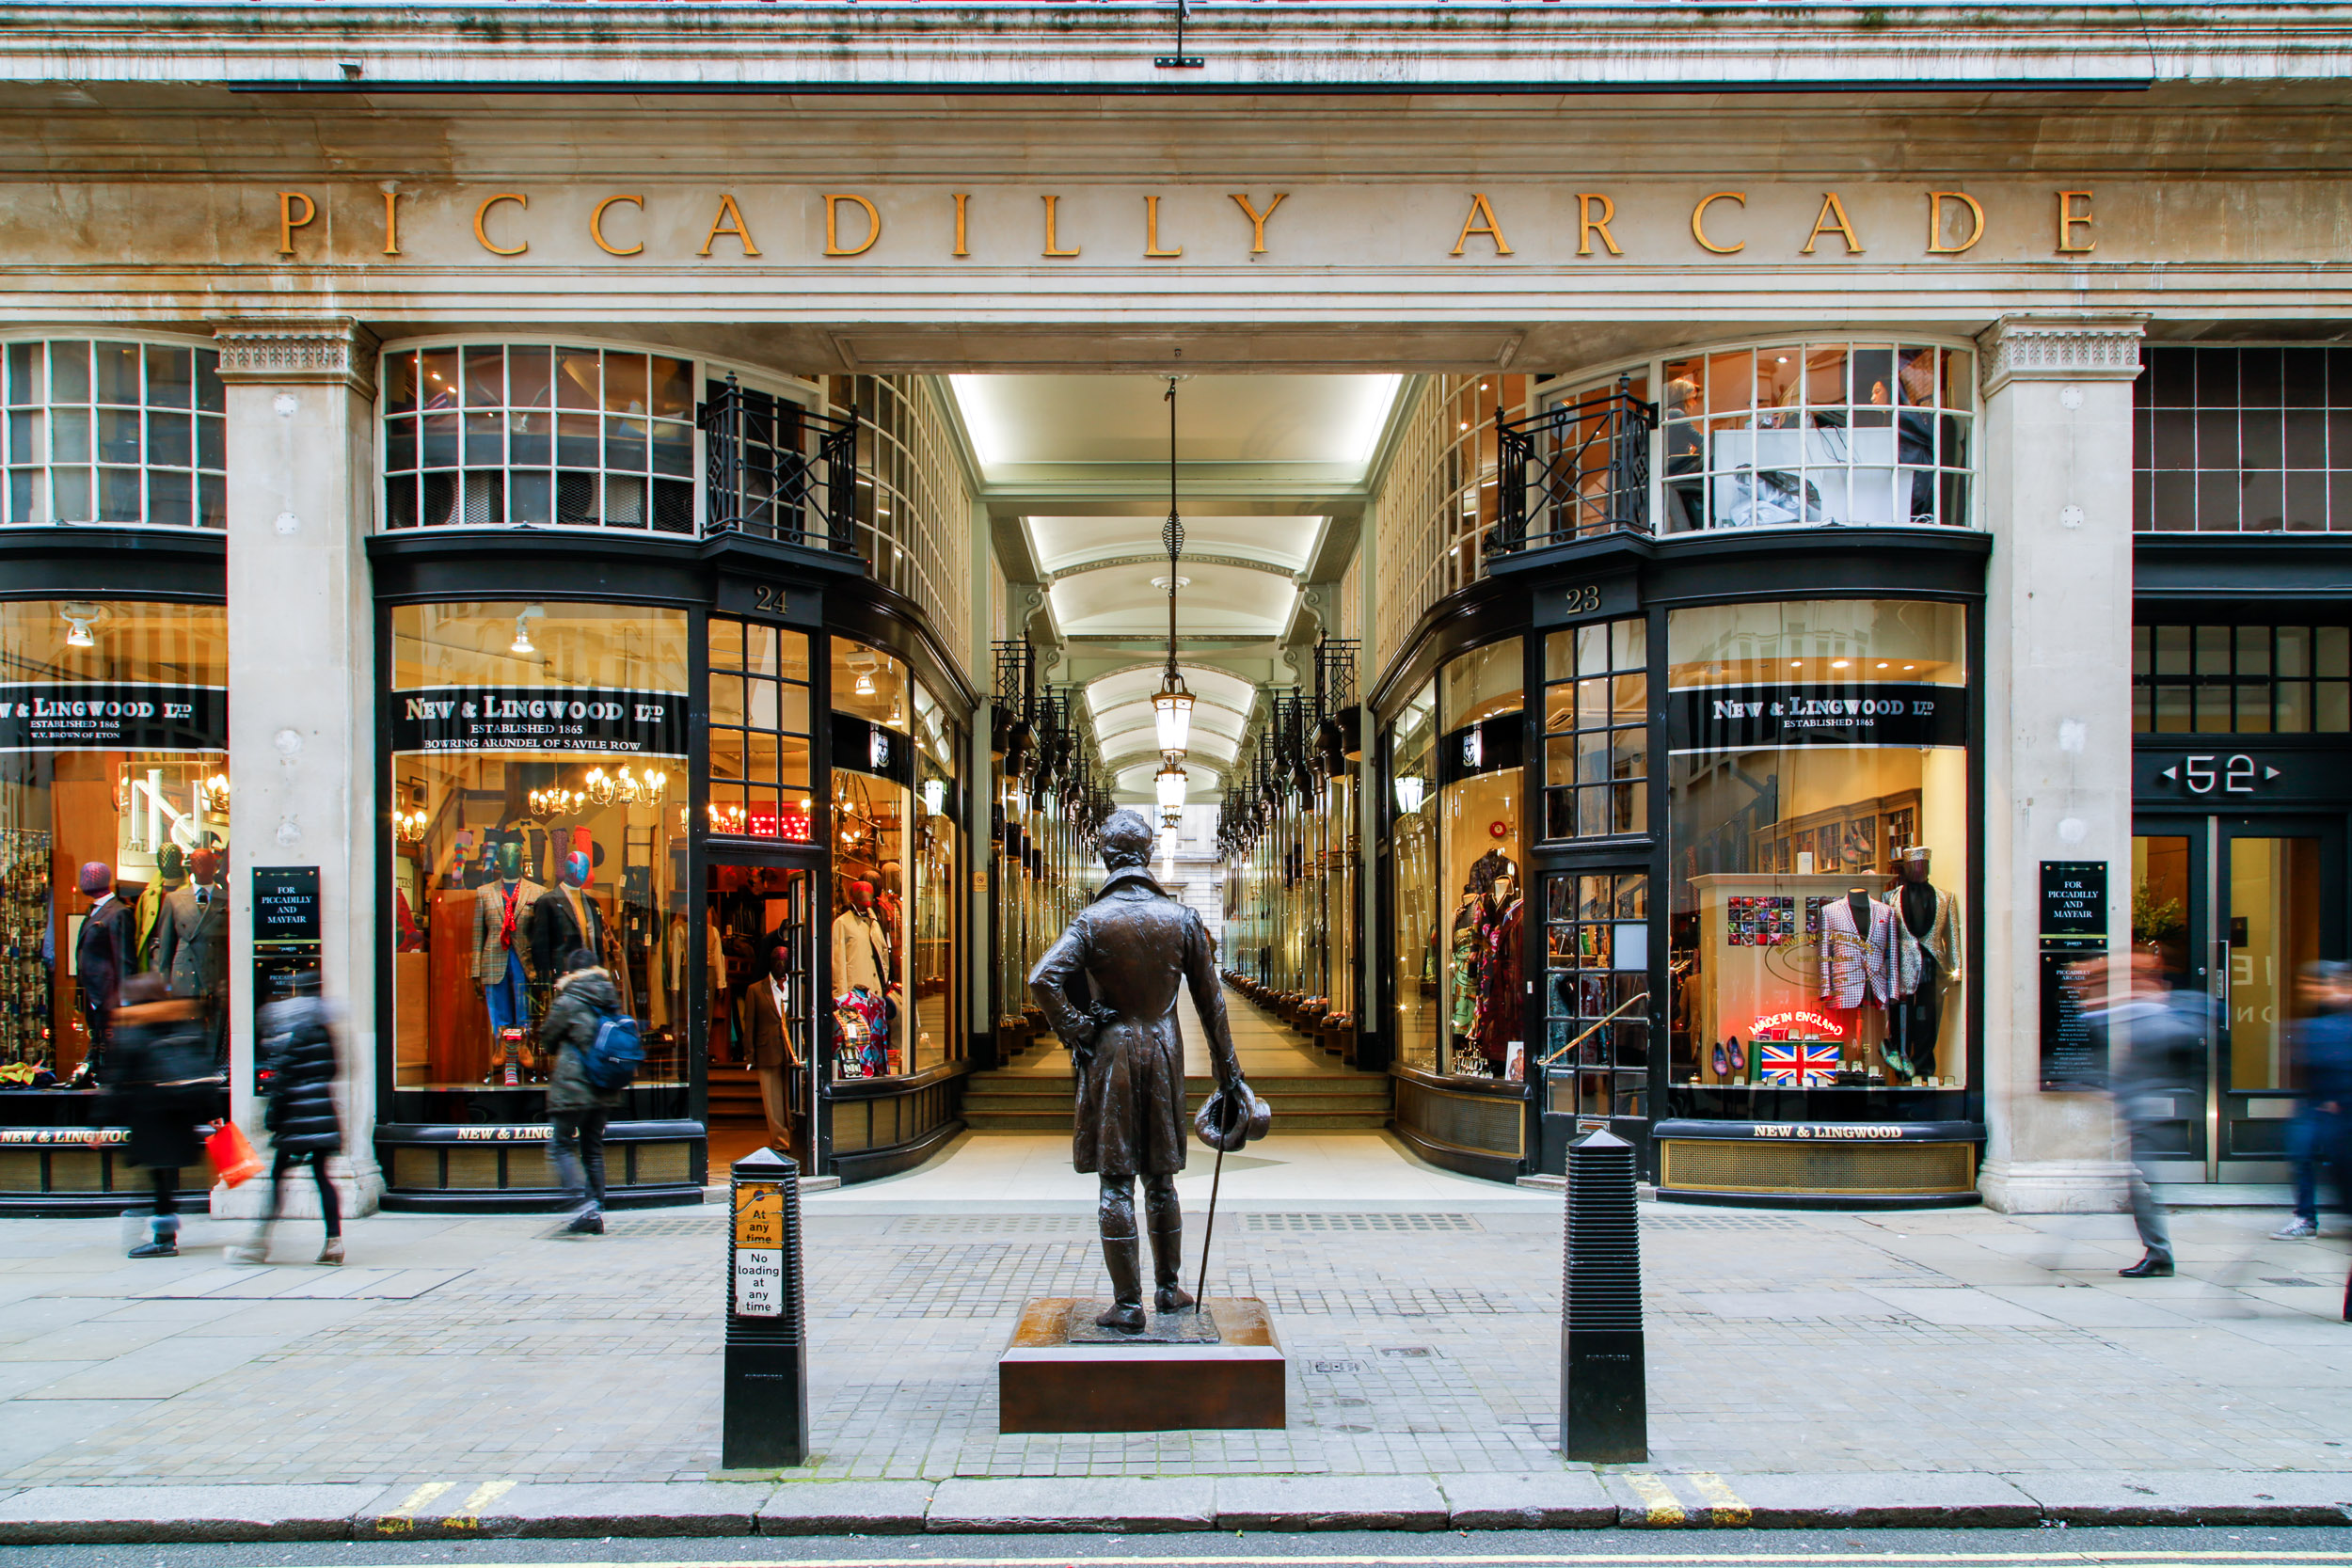 PICCADILLY ARCADE FOR PICCADILLY AND MAYFAIR